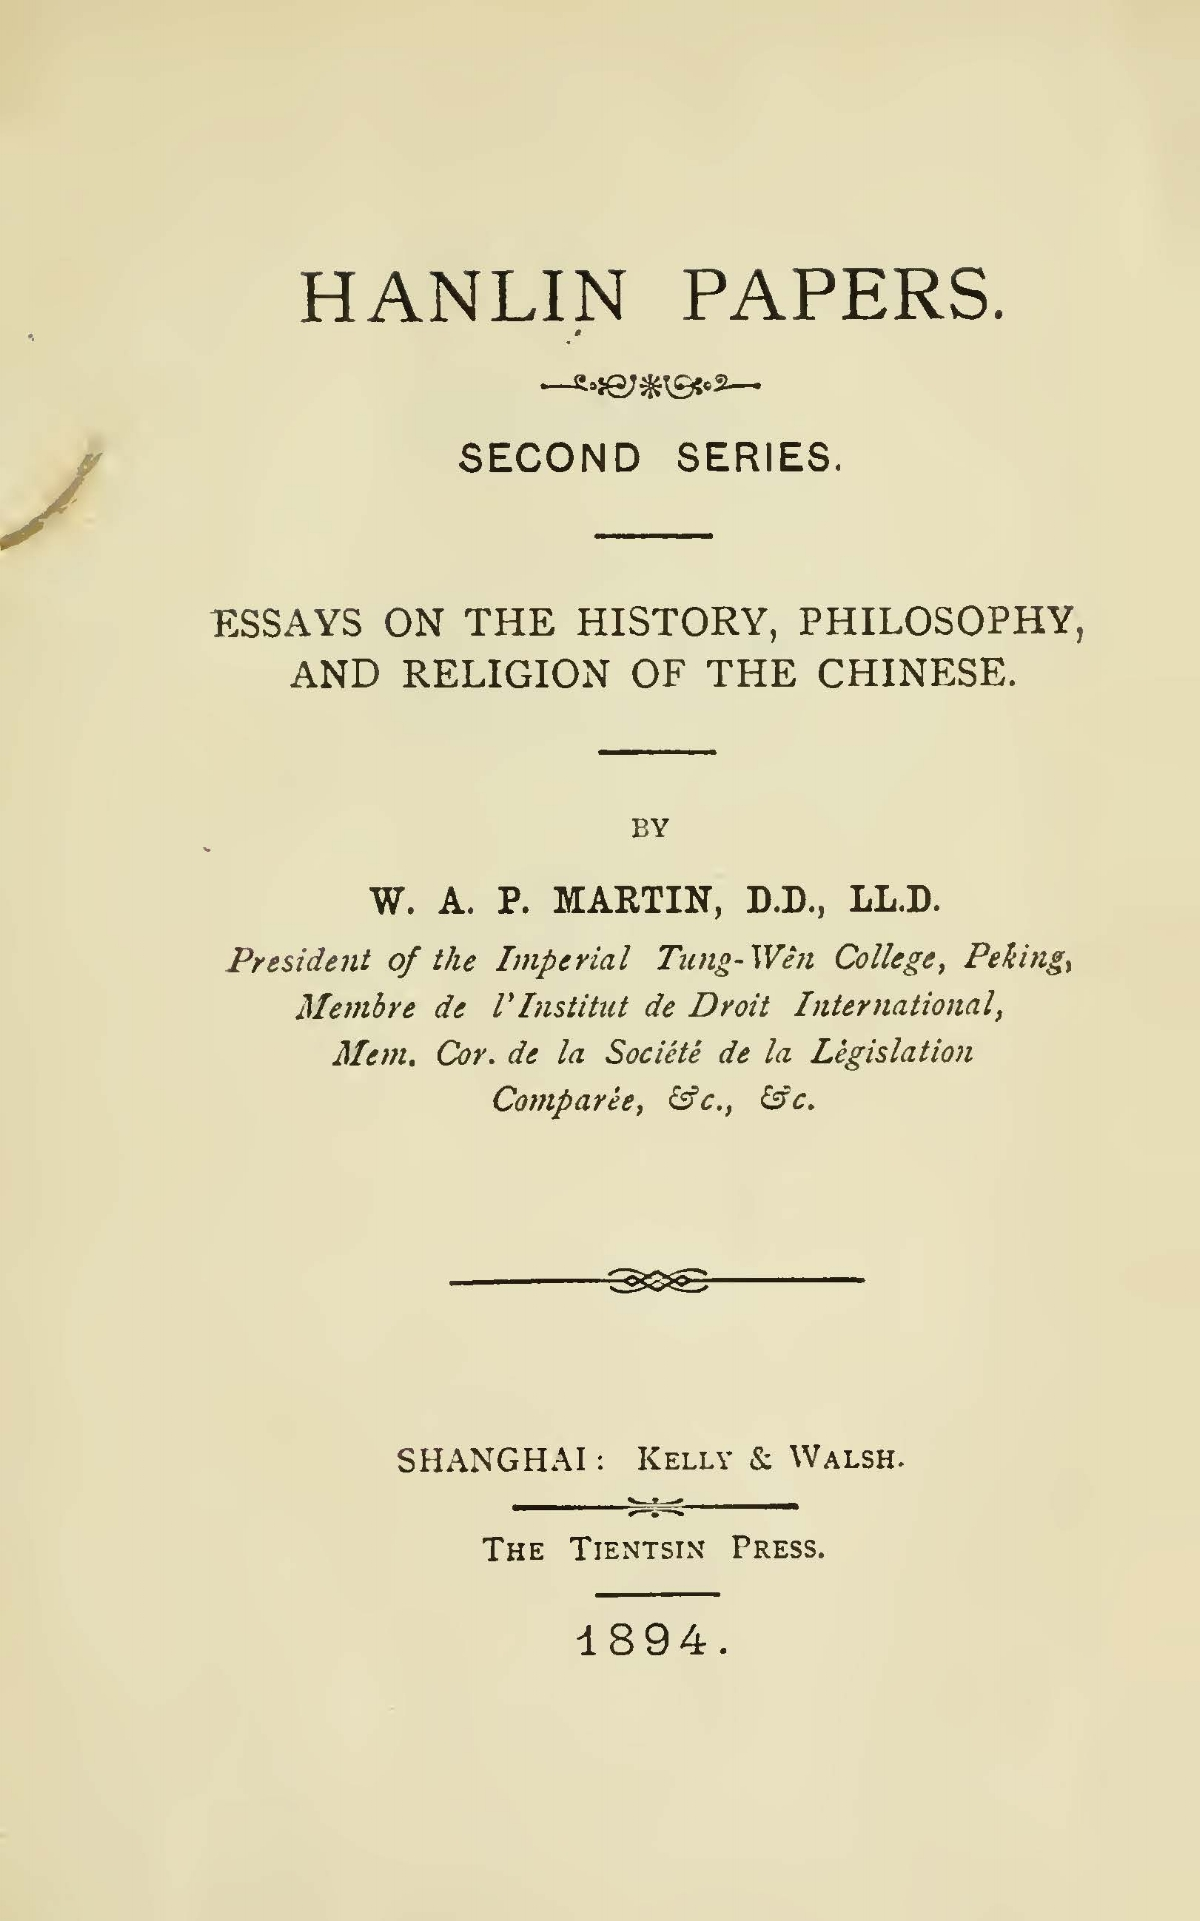 Martin, William Alexander Parsons, Hanlin Papers Title Page.jpg